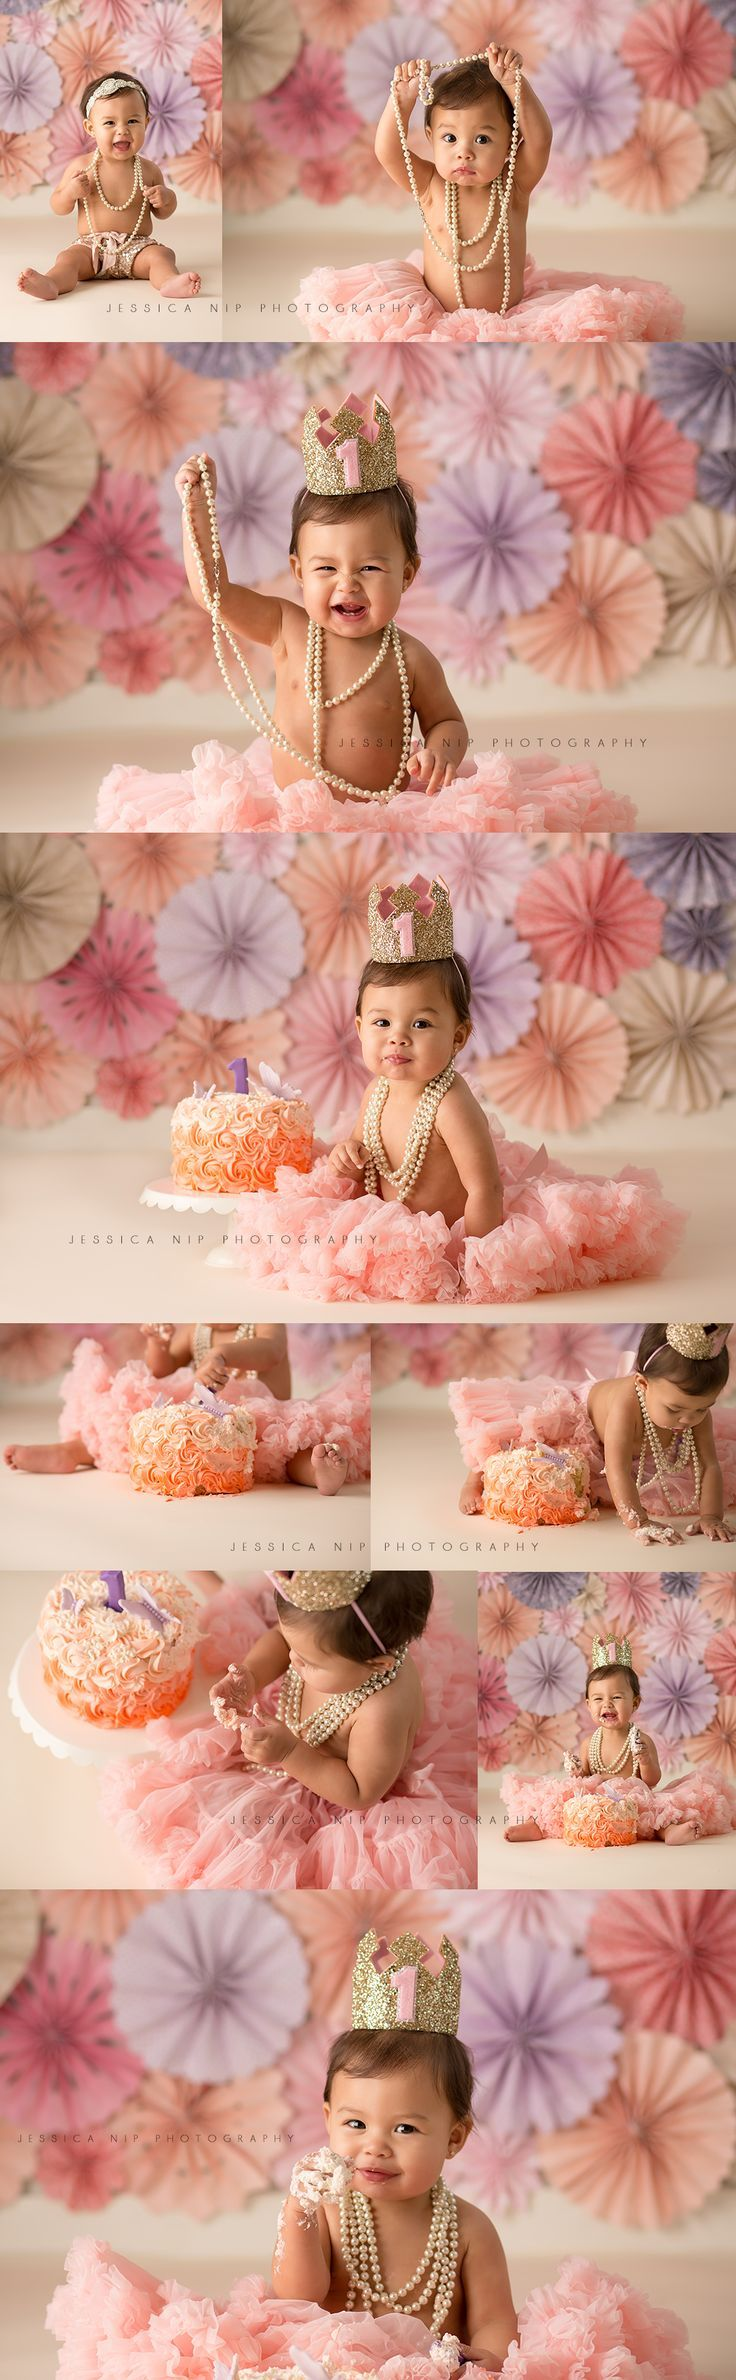 Girly Cake Smash Featuring Pinwheels, Pearls and a fabulous little princess! ©2015 www.jessicanip.com | Toronto, Canada | Jessica Nip Photography | info@jessicanip.com